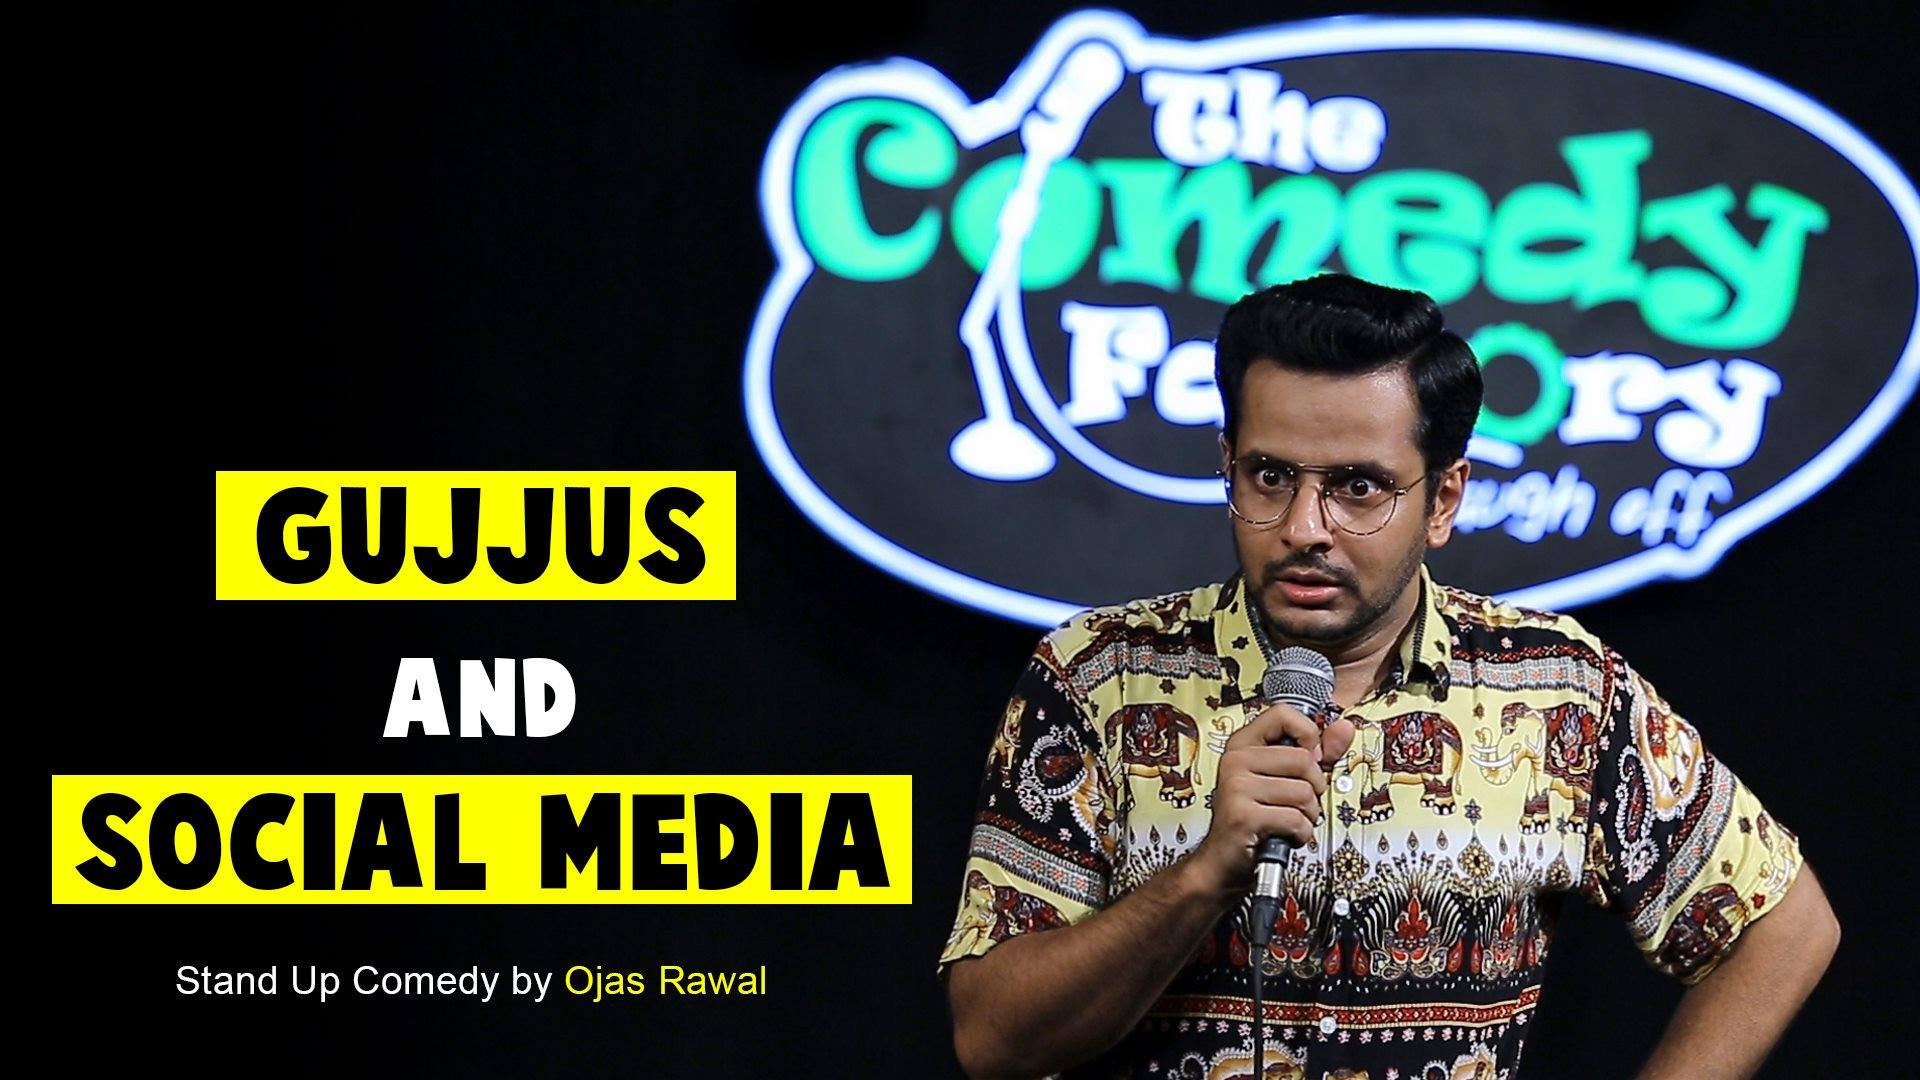 Ever wondered that Kabaddi can be similar to the functioning of social media? 🤔 Check out my latest Gujarati stand-up comedy video on Gujjus and Social Media!